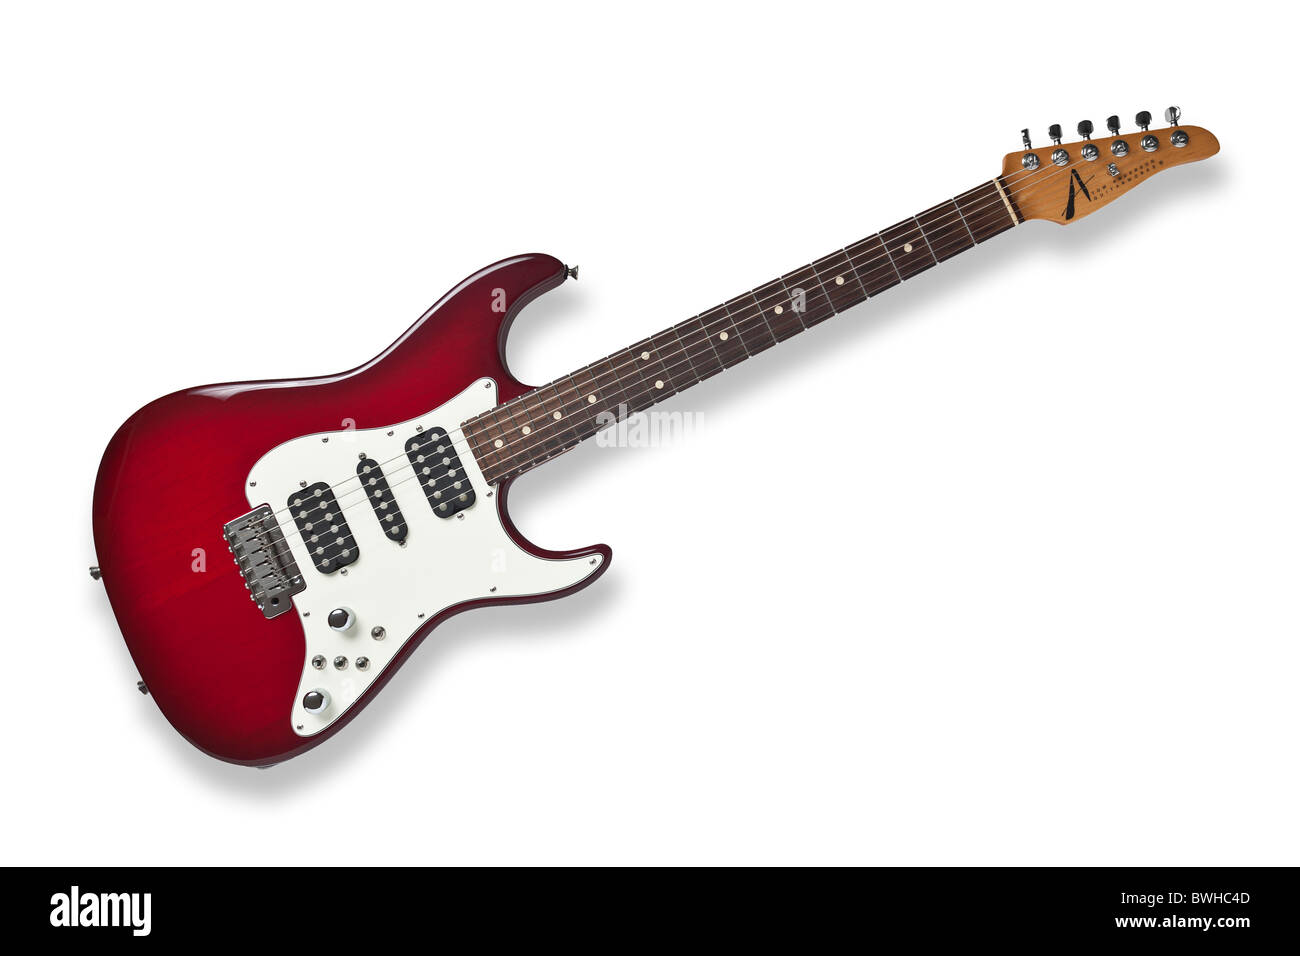 An electric guitar of Tom Anderson's brand name. Guitare électrique de marque Tom Anderson. - Stock Image